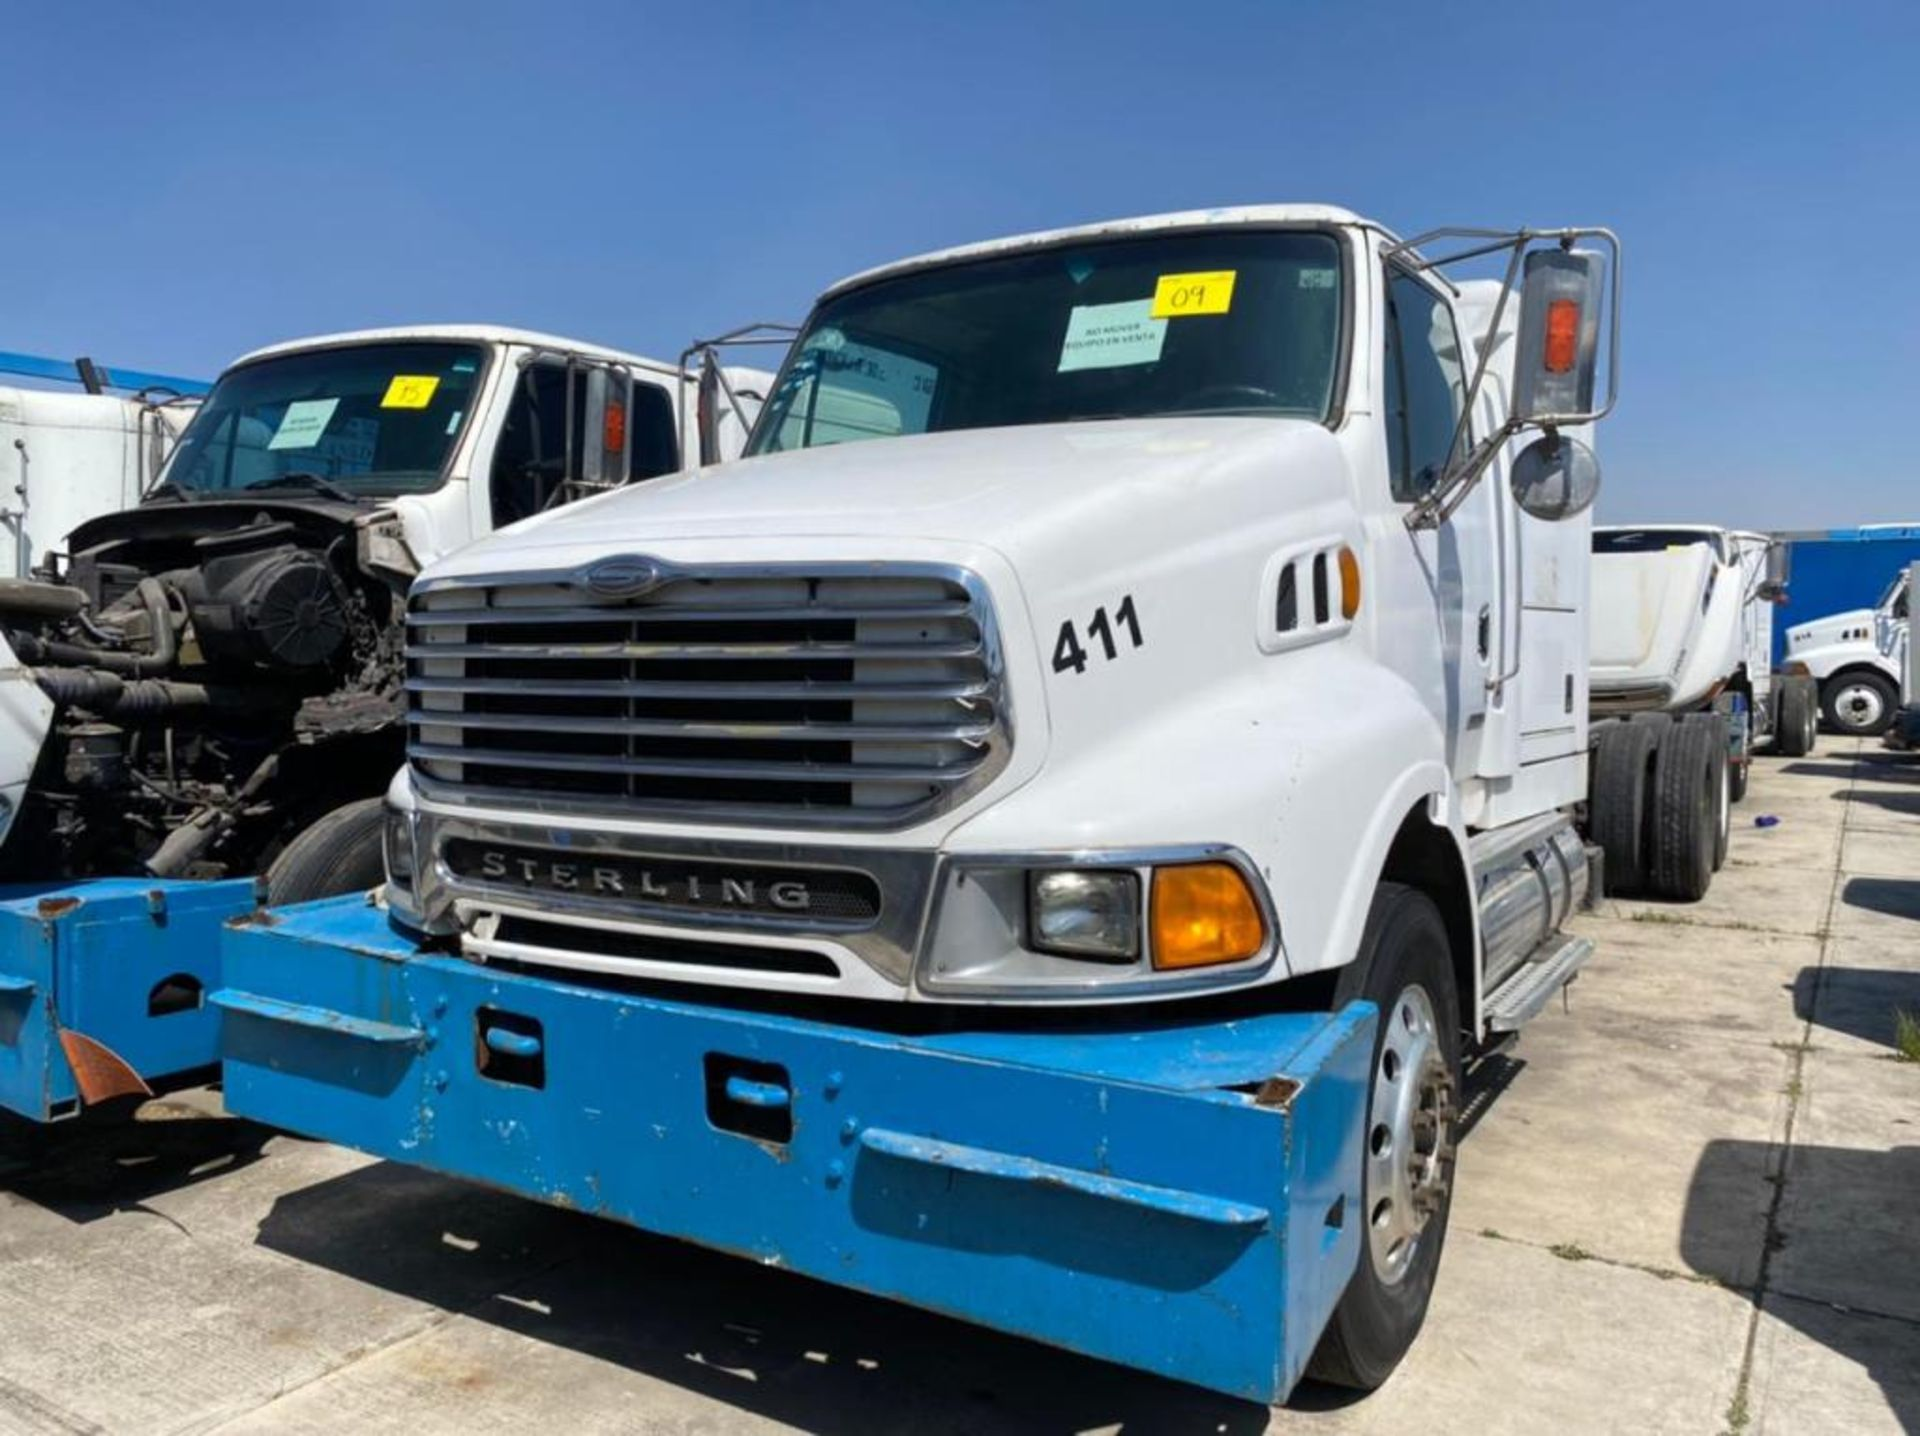 Tractocamión Marca STERLING, LT9500 Chassis, Modelo 2001 - Image 3 of 26